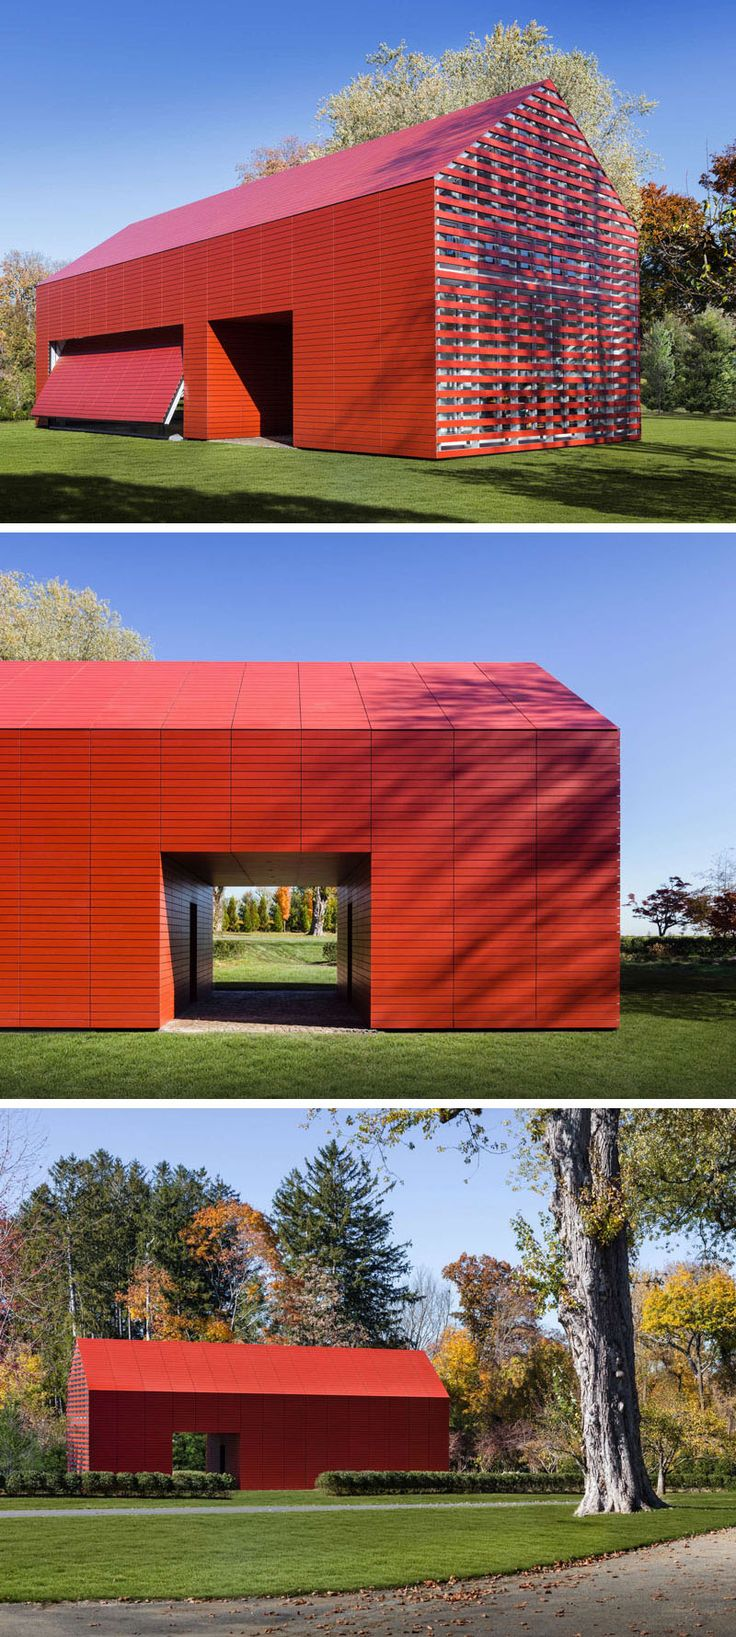 11 Red Houses And Buildings That Aren't Afraid To Make A Statement | This red house has both a living space on the second floor and a studio/workshop on the first floor.